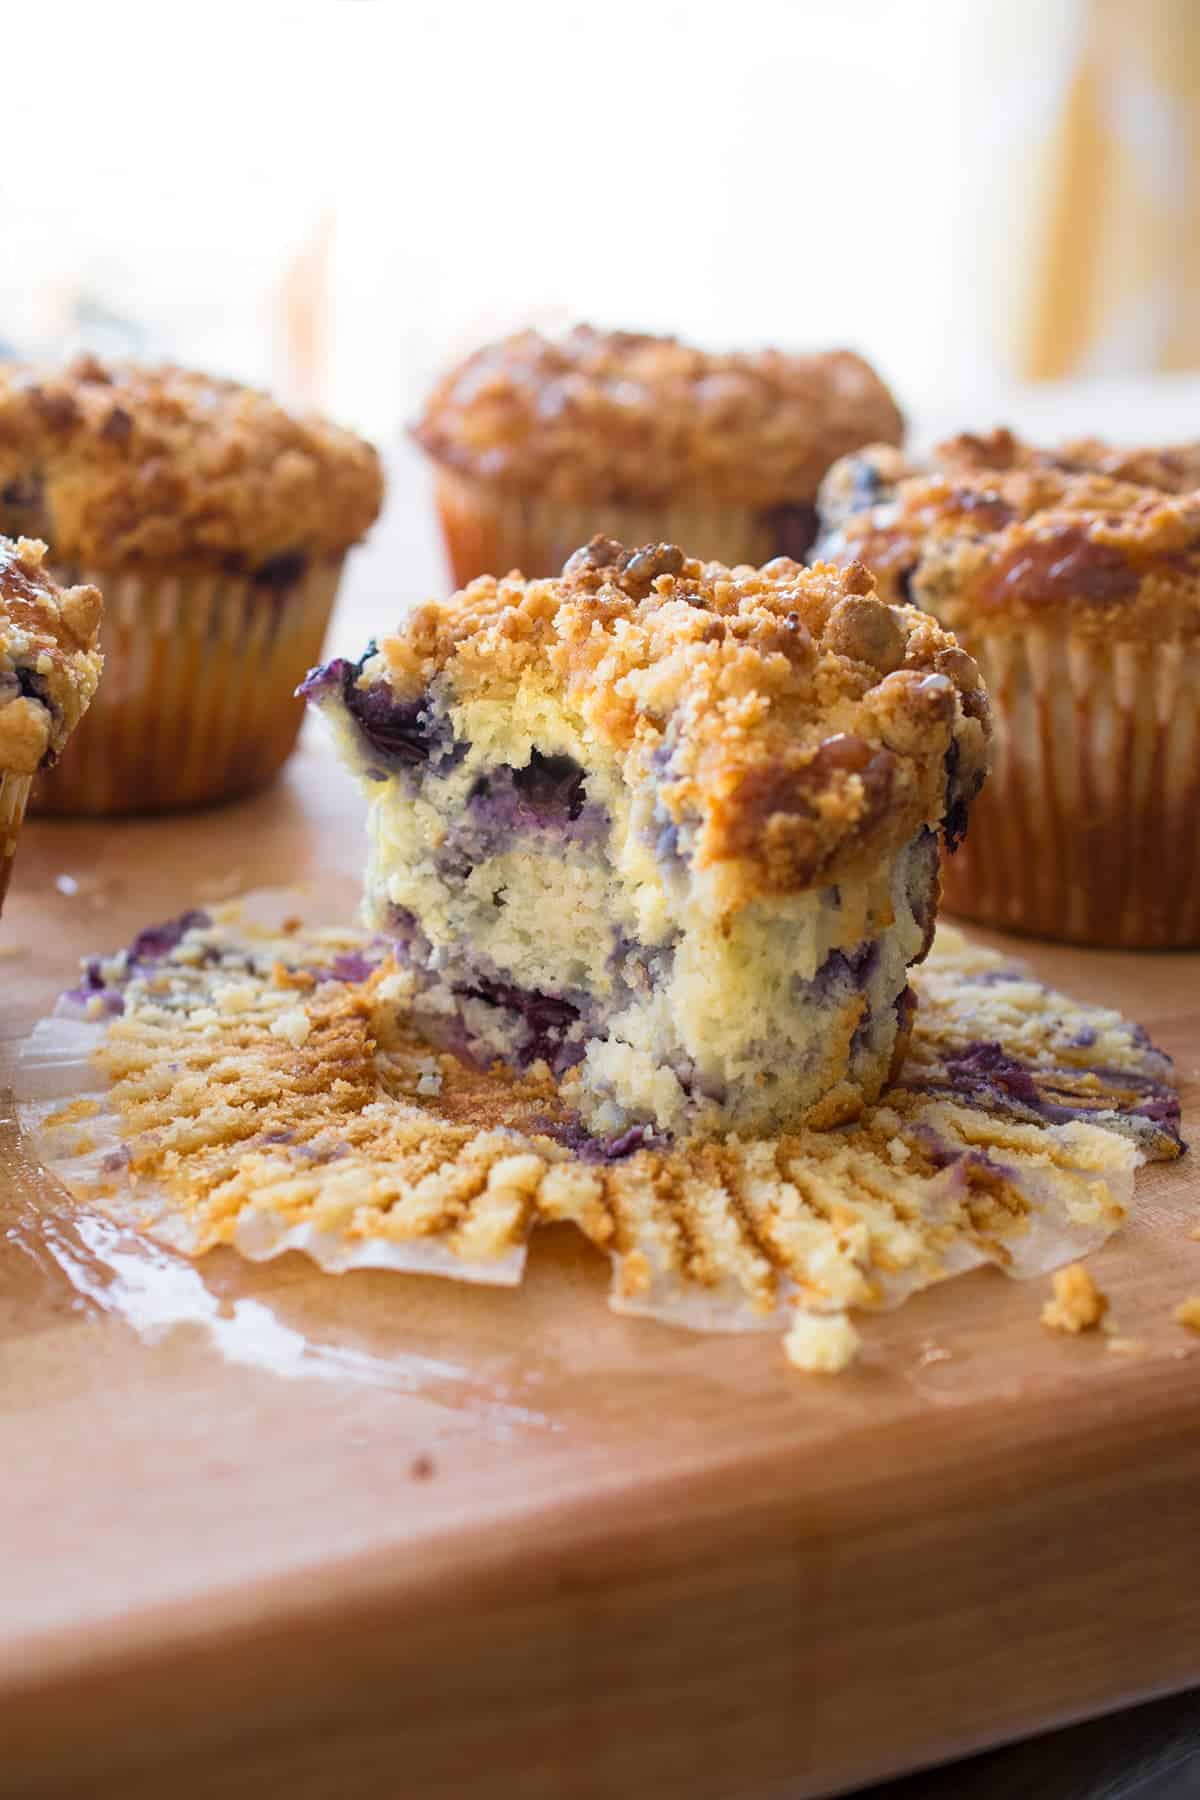 Lemon blueberry muffin with bite missing. 3 other muffins in the background.